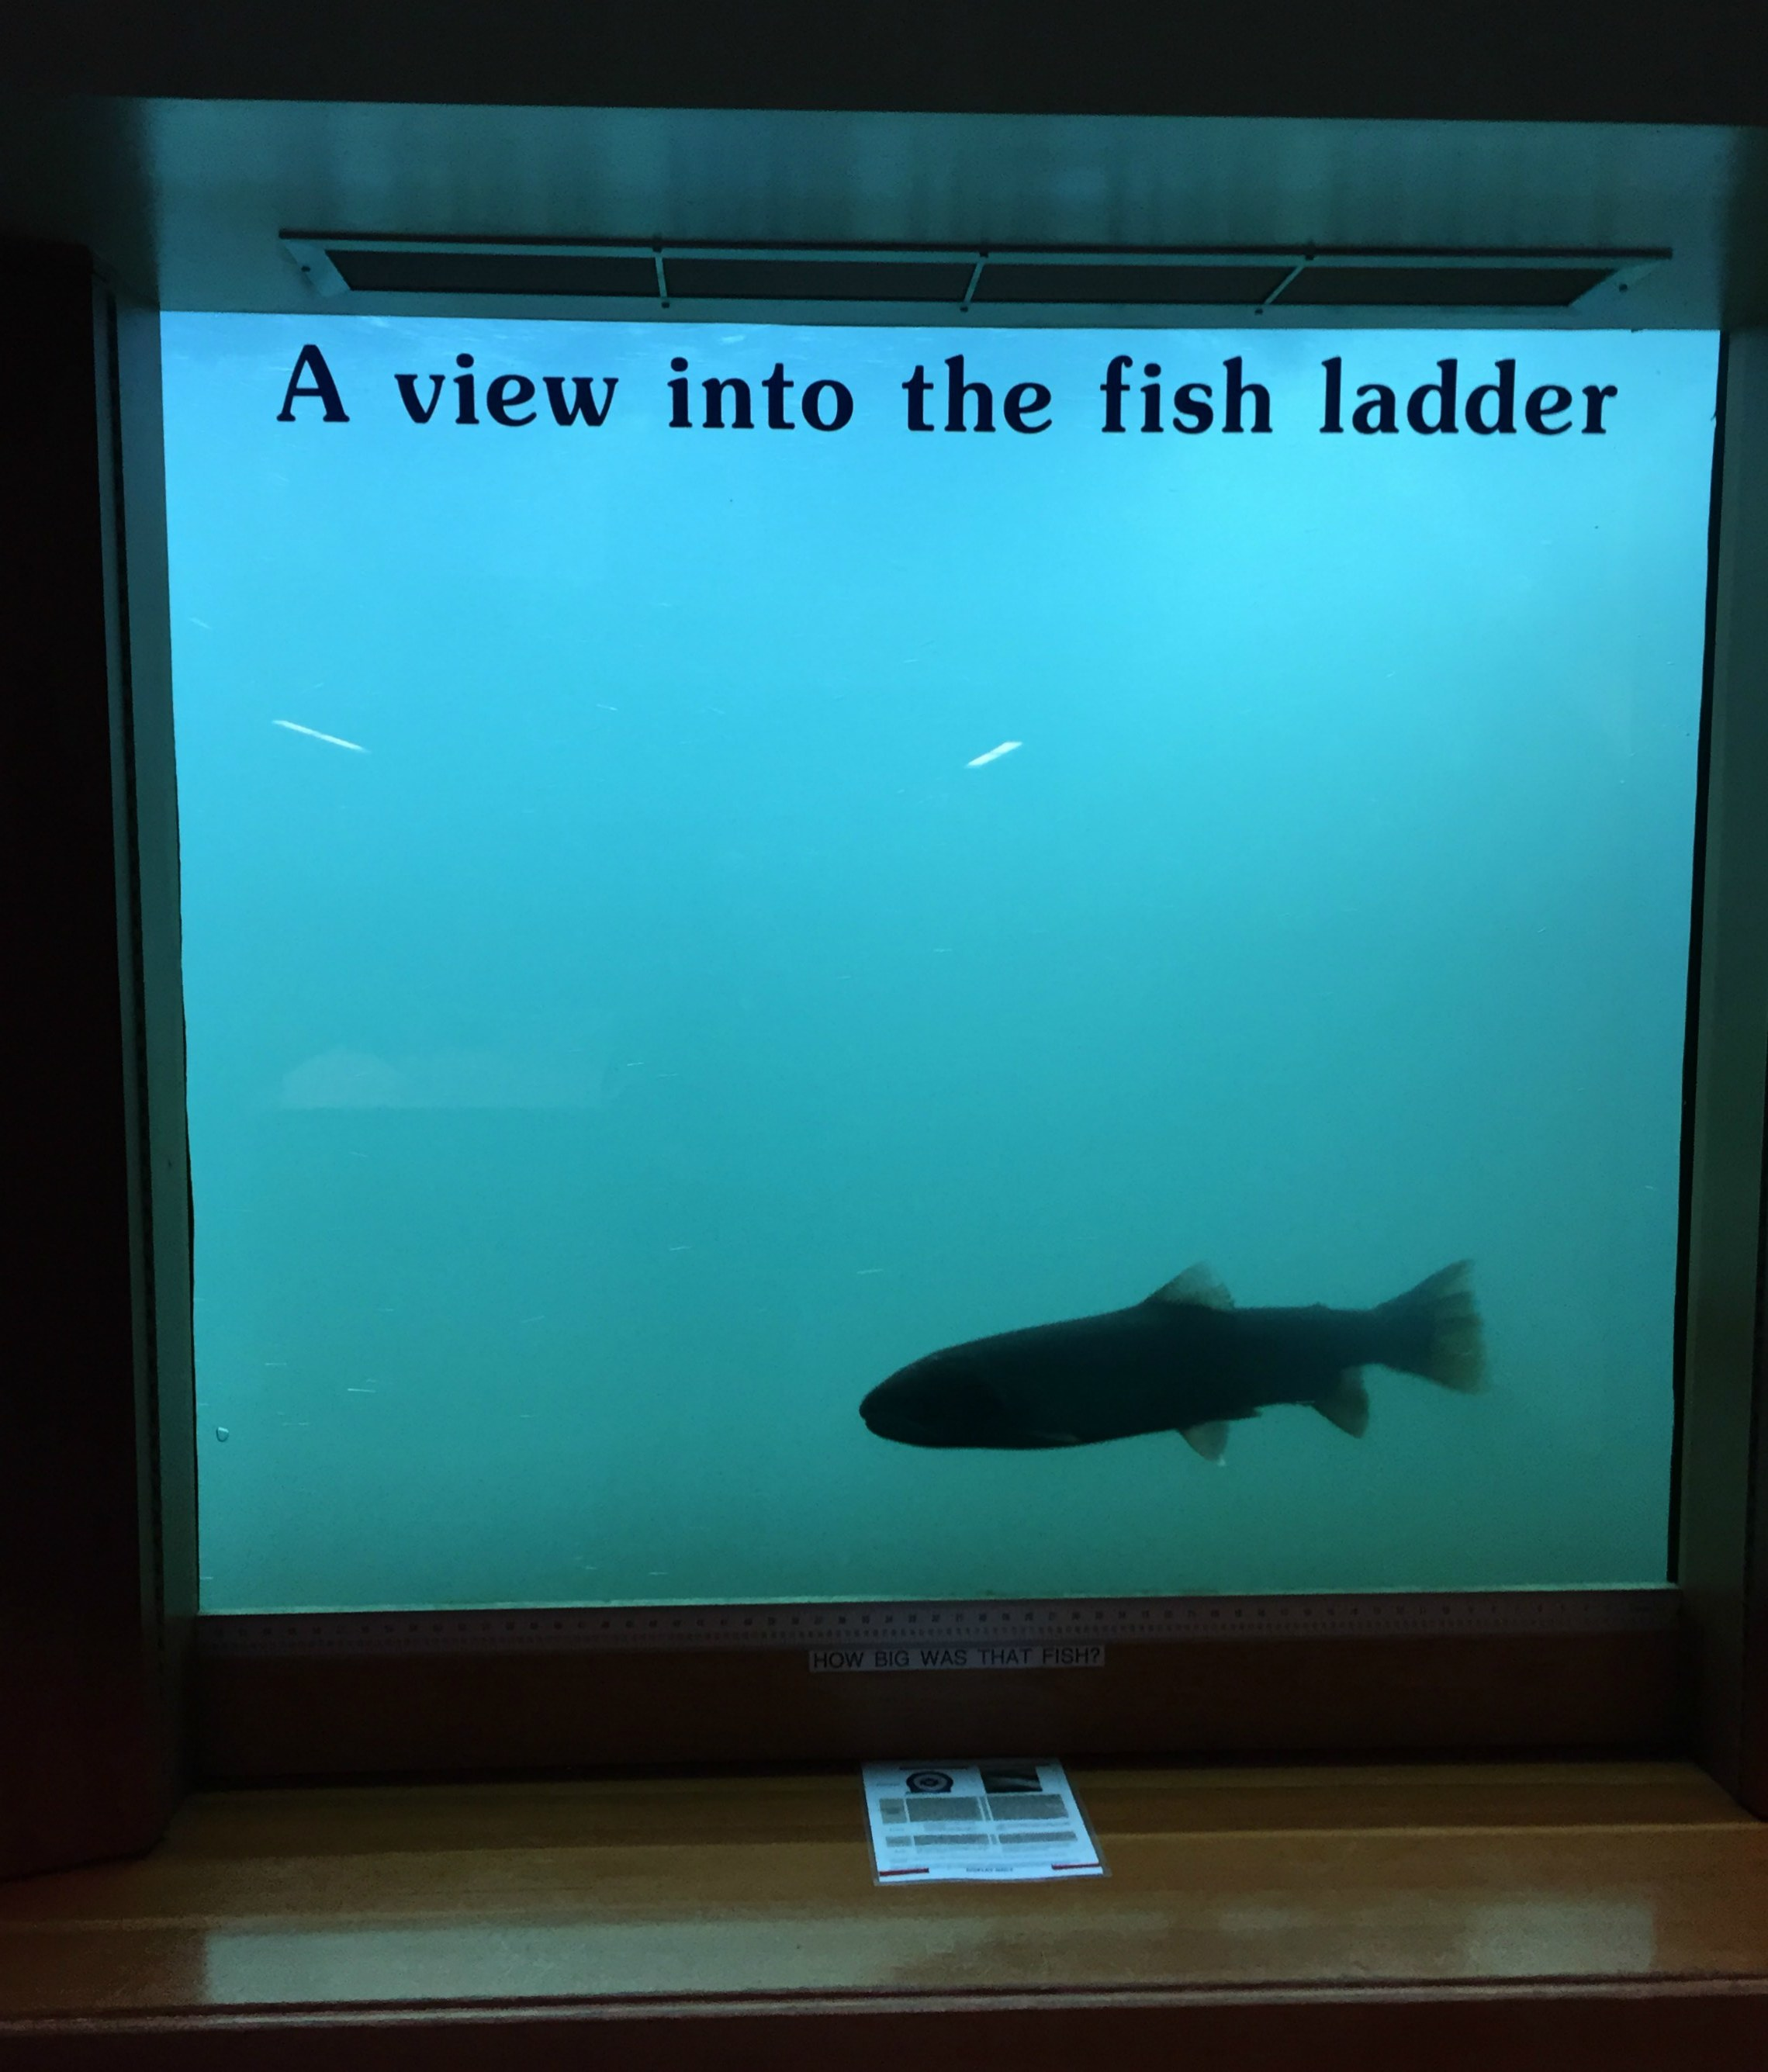 fish_ladder.jpg